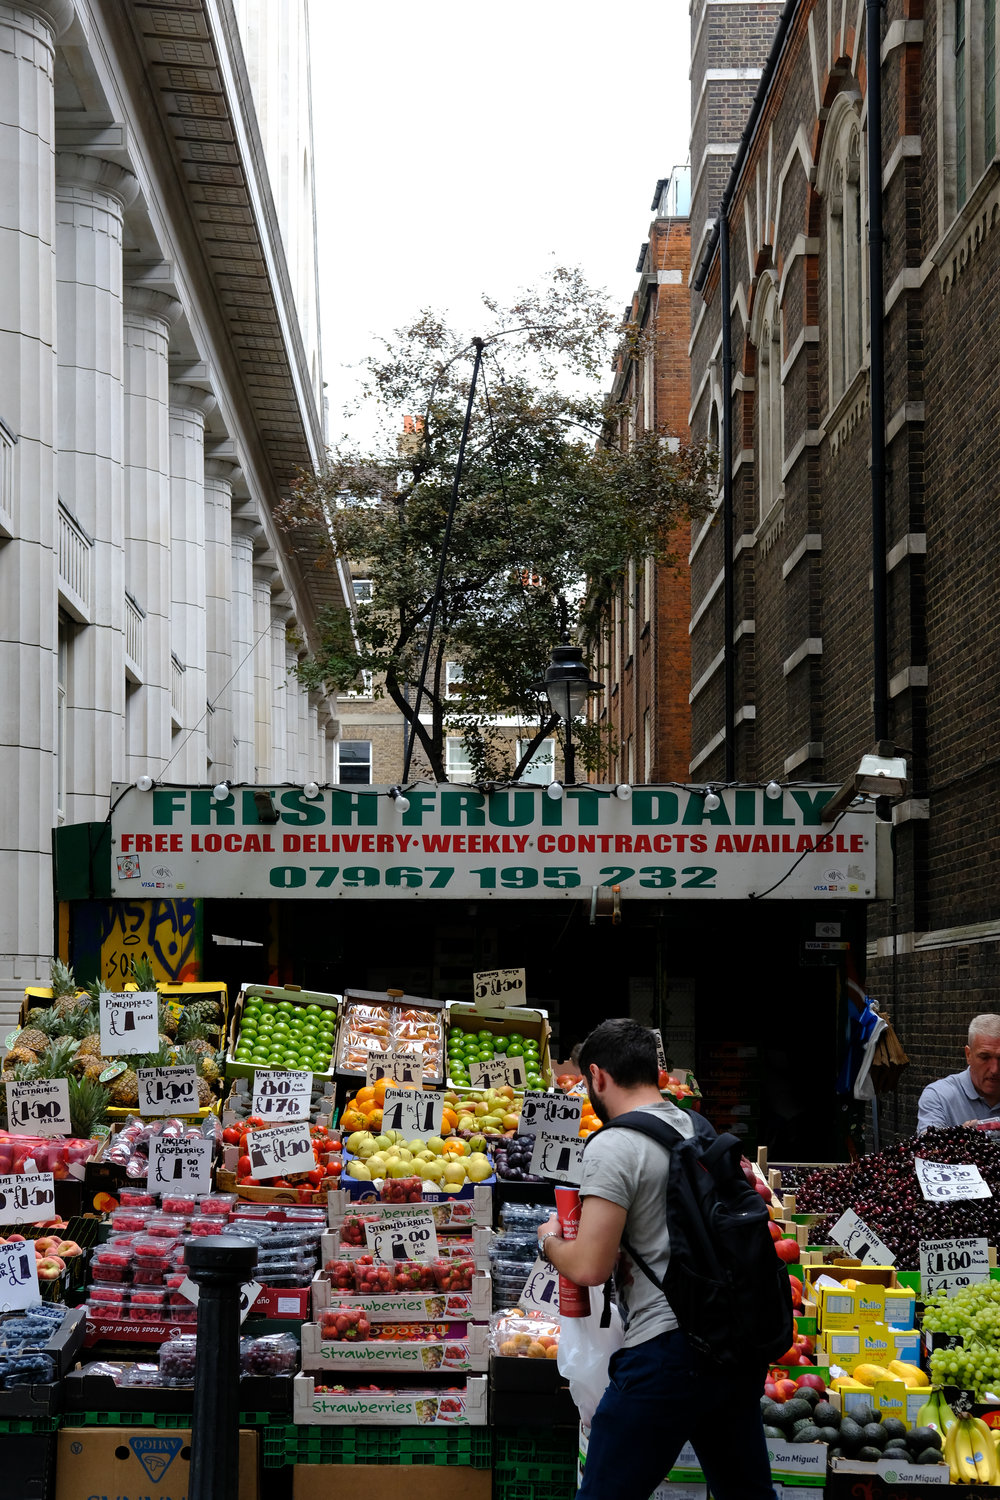 AUGUST 18, 2018 • FRUIT STAND • 📍London, UK 🇬🇧